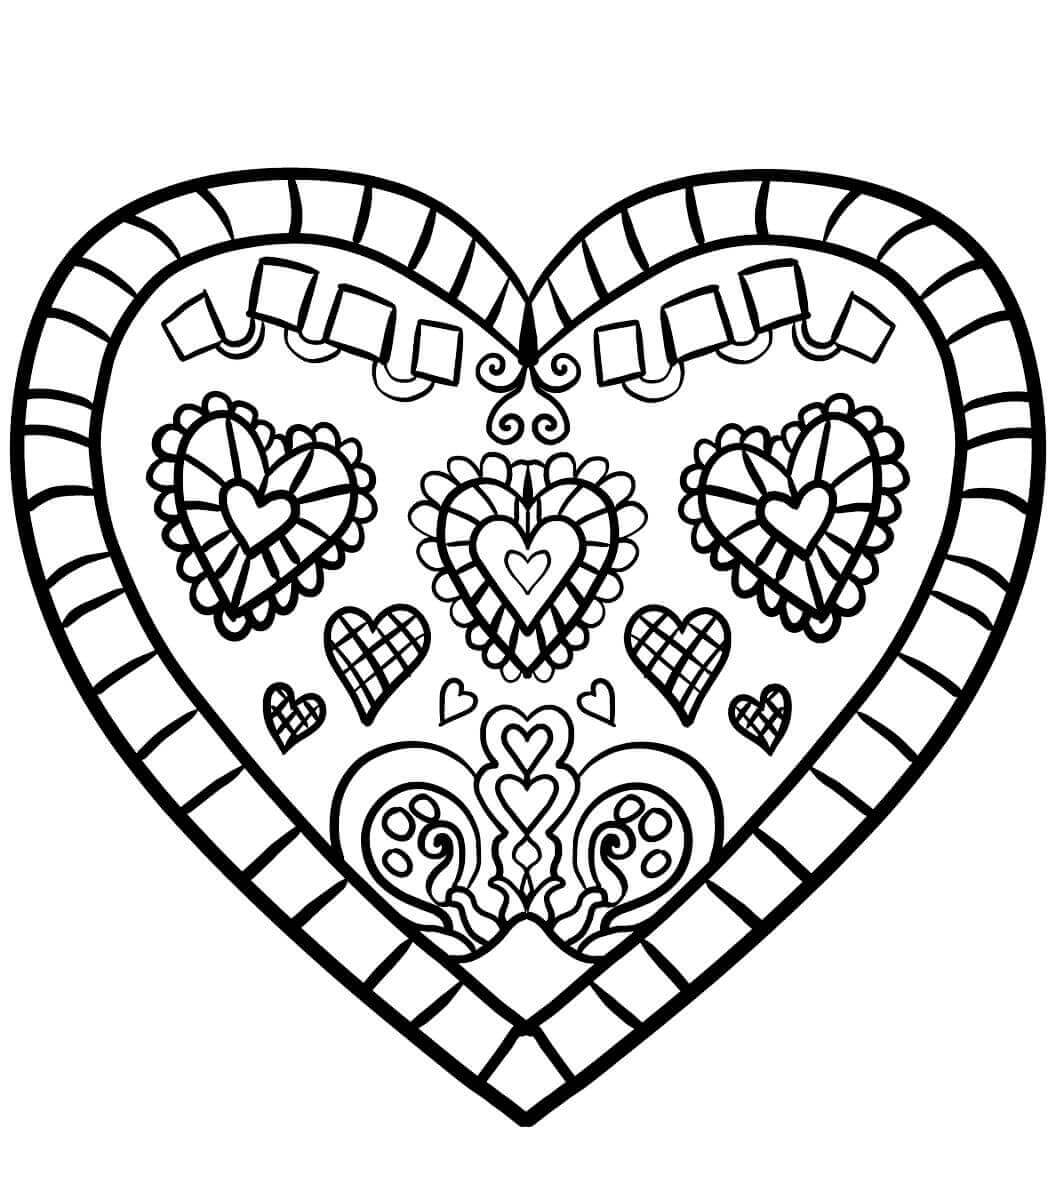 heart for coloring free printable heart templates diy 100 ideas for heart coloring